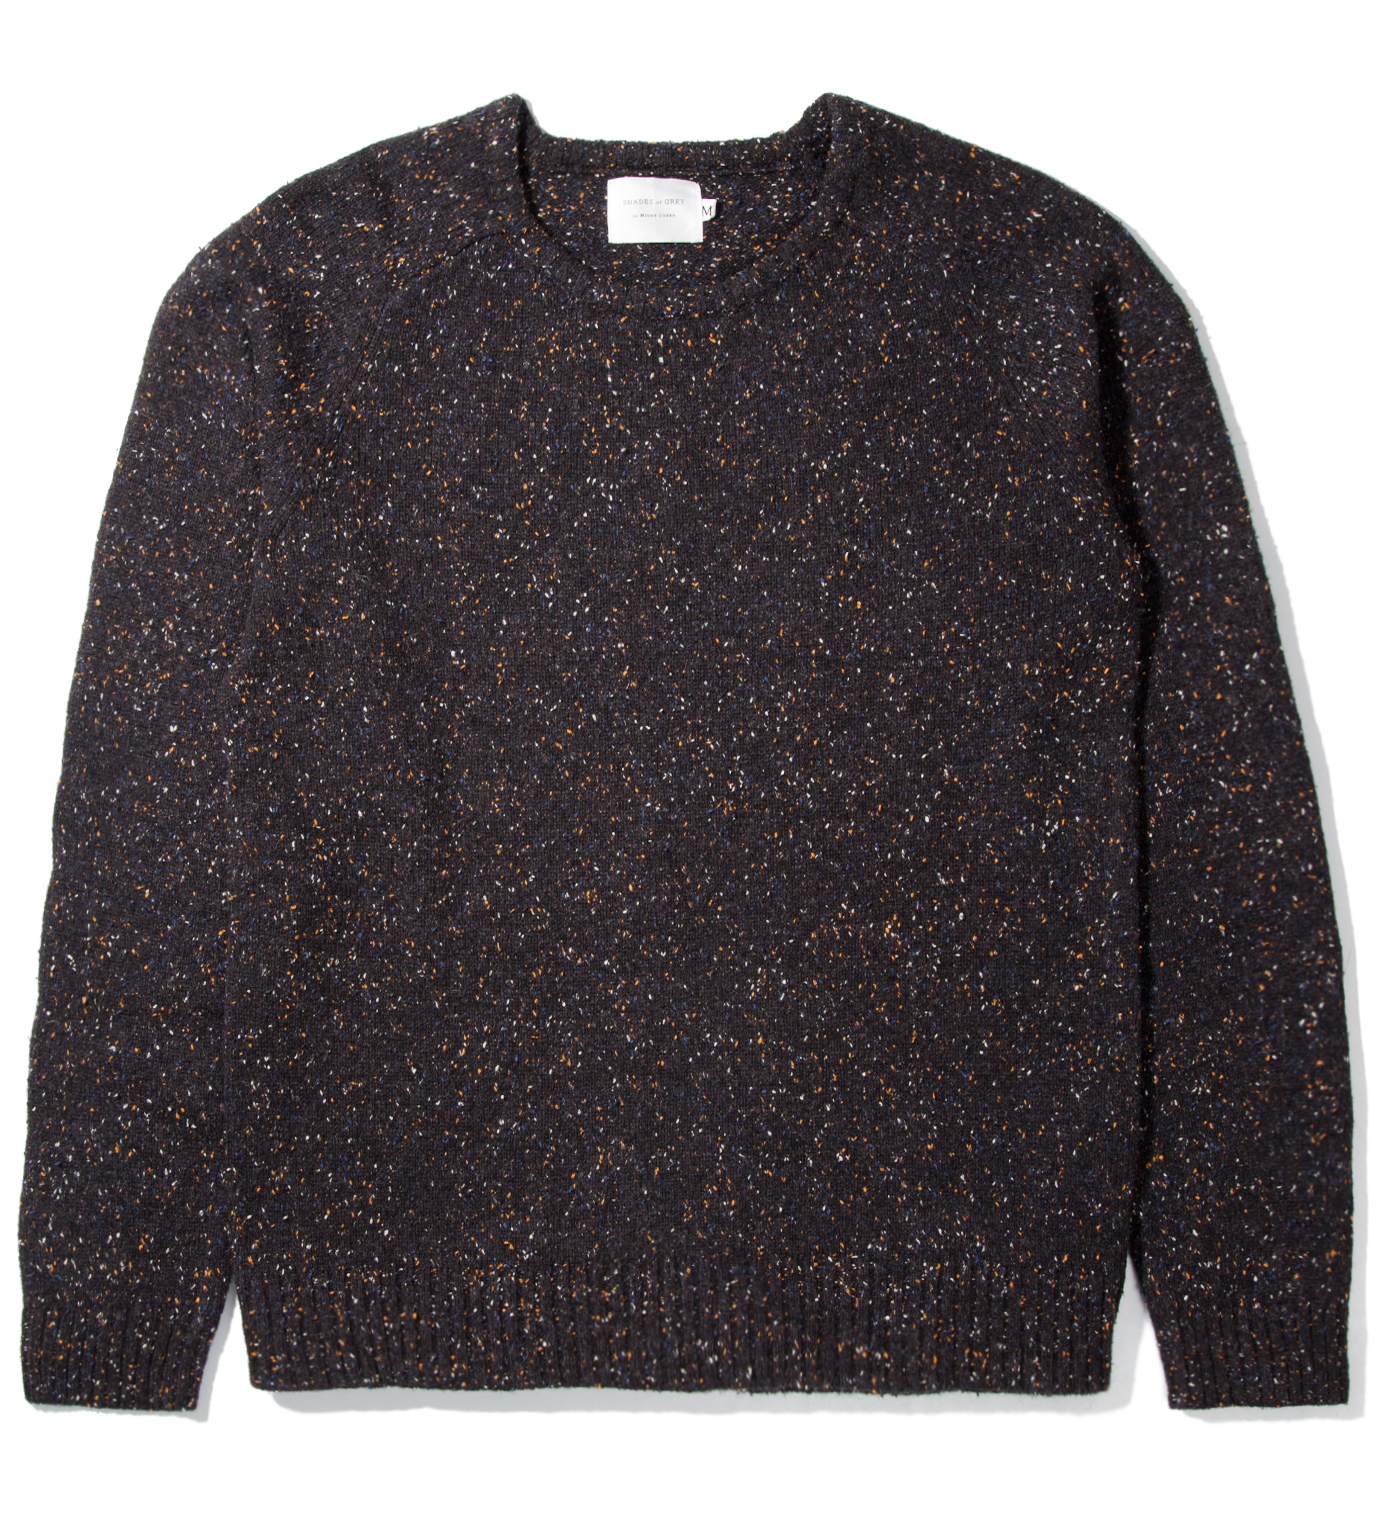 Shades of Grey by Micah Cohen Night Sky Marled Crewneck Sweater